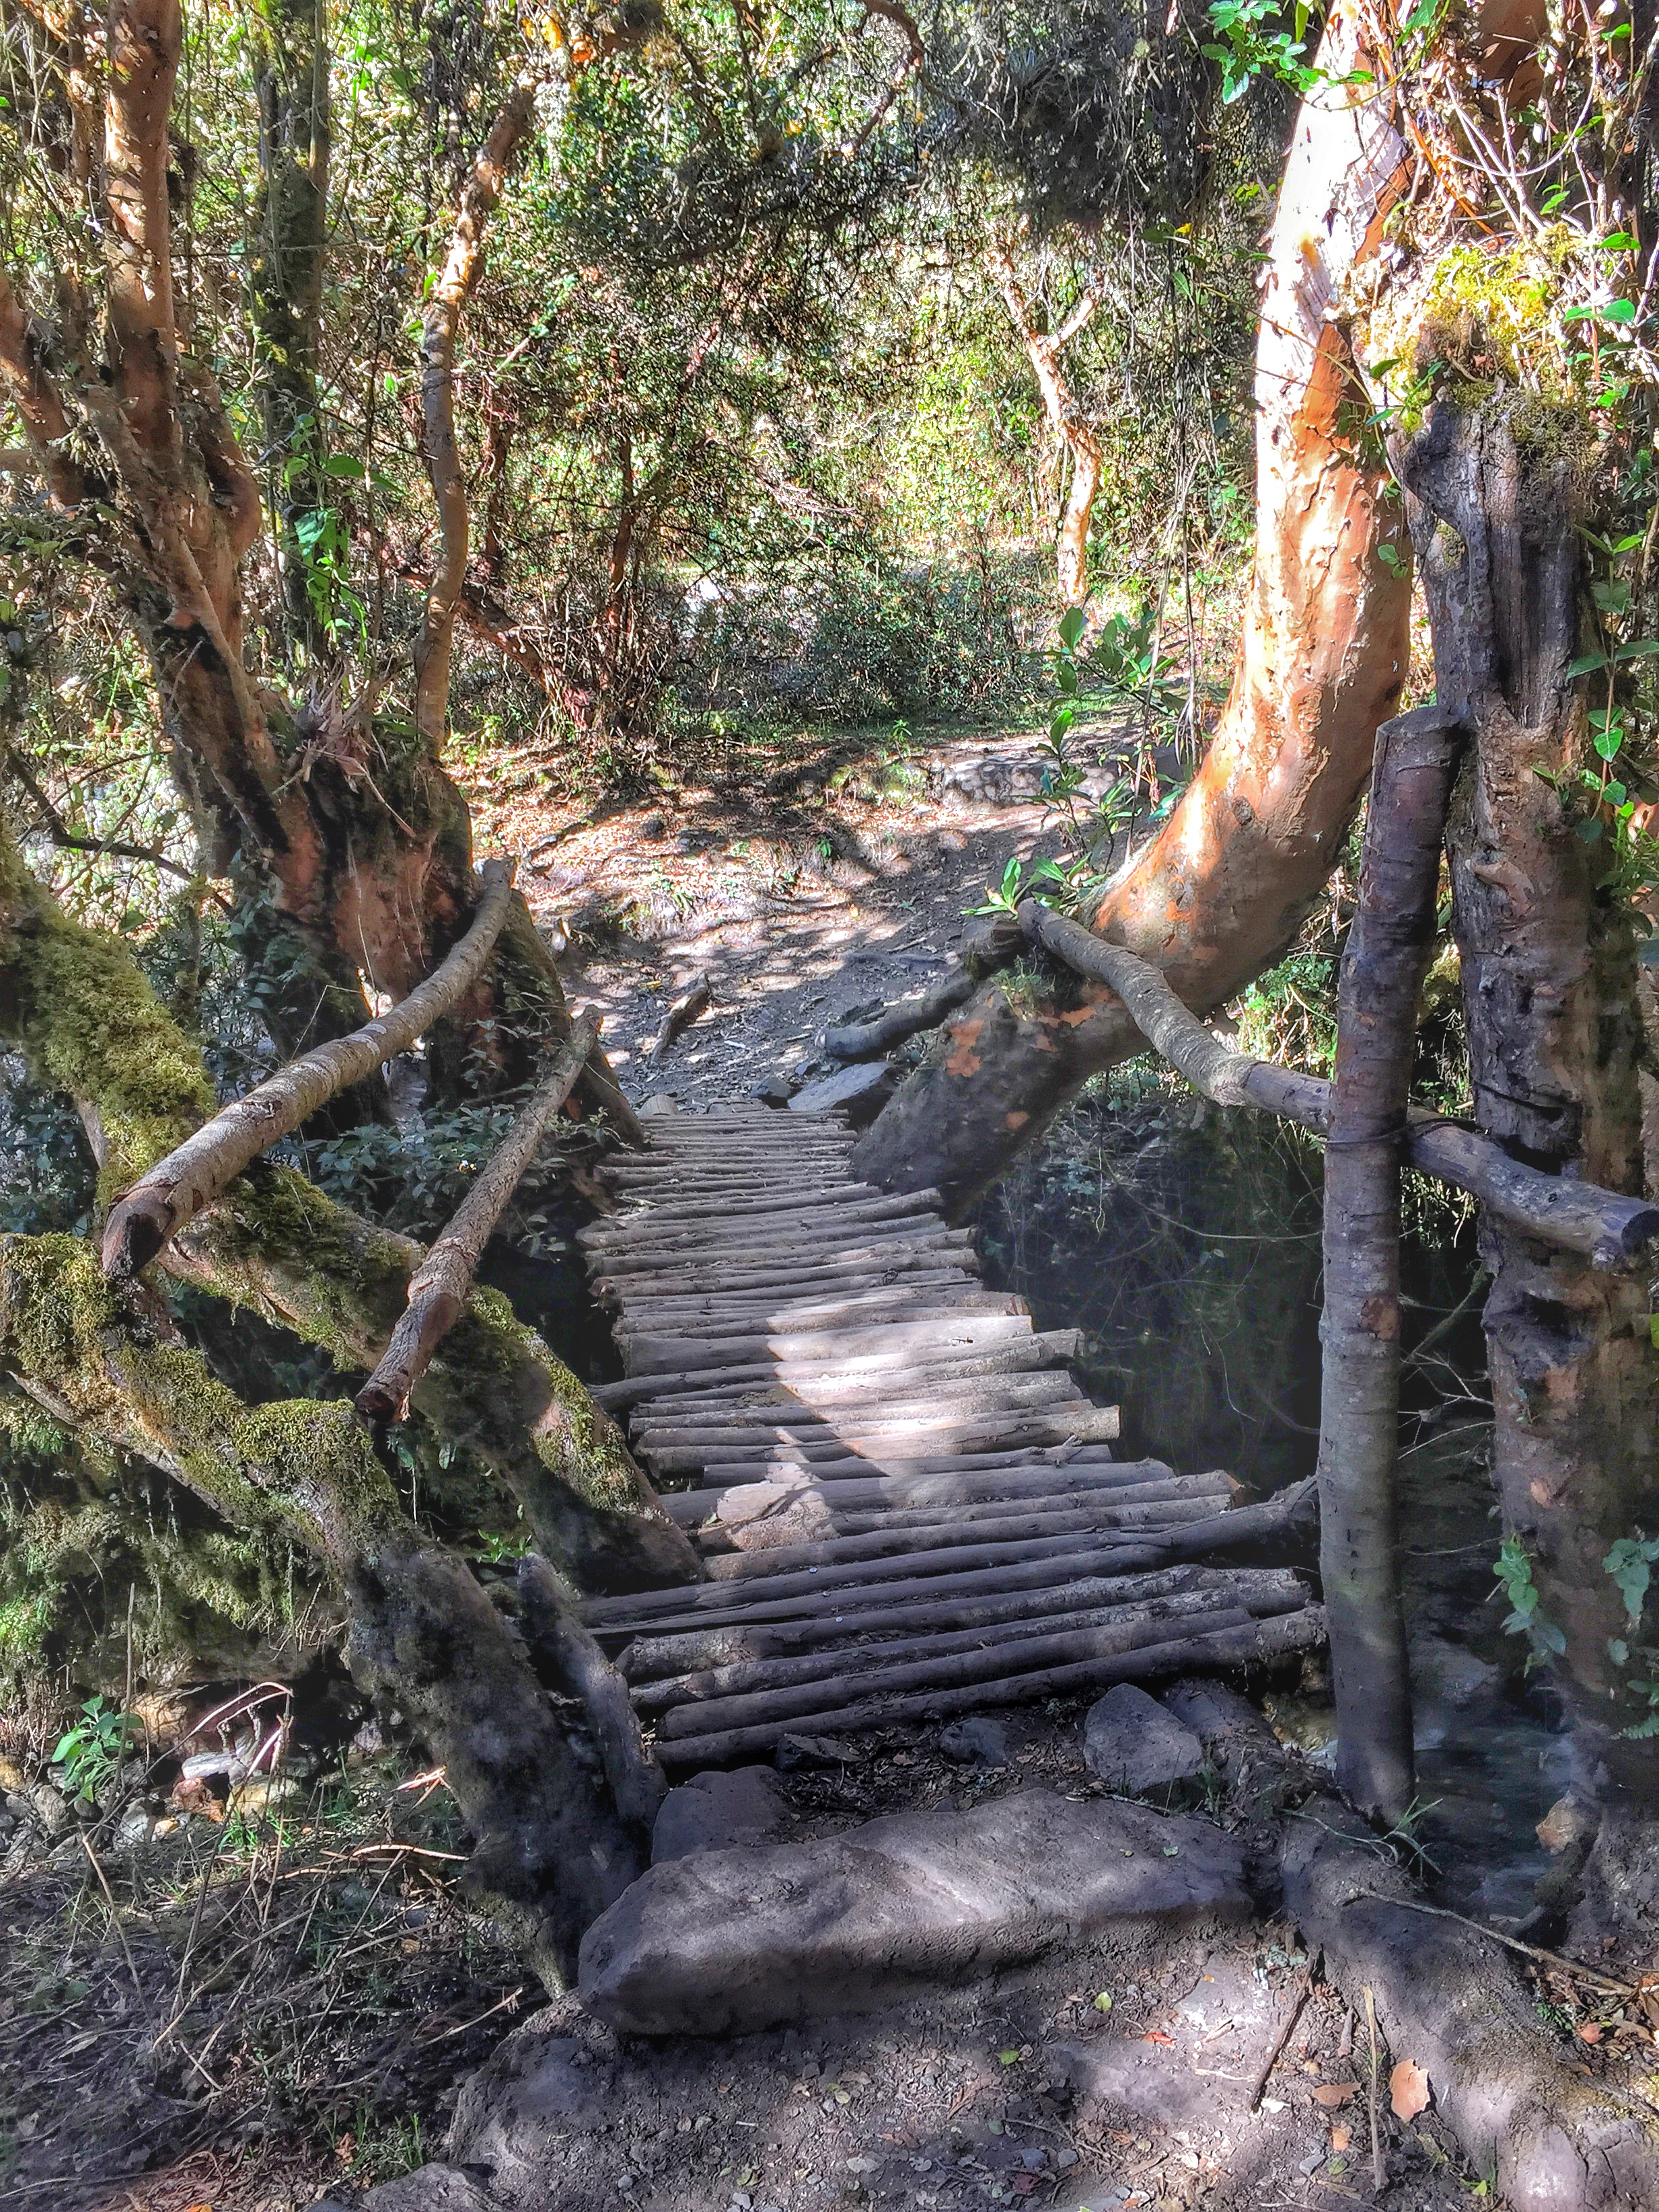 One of the many bridges we had to cross on the trail.